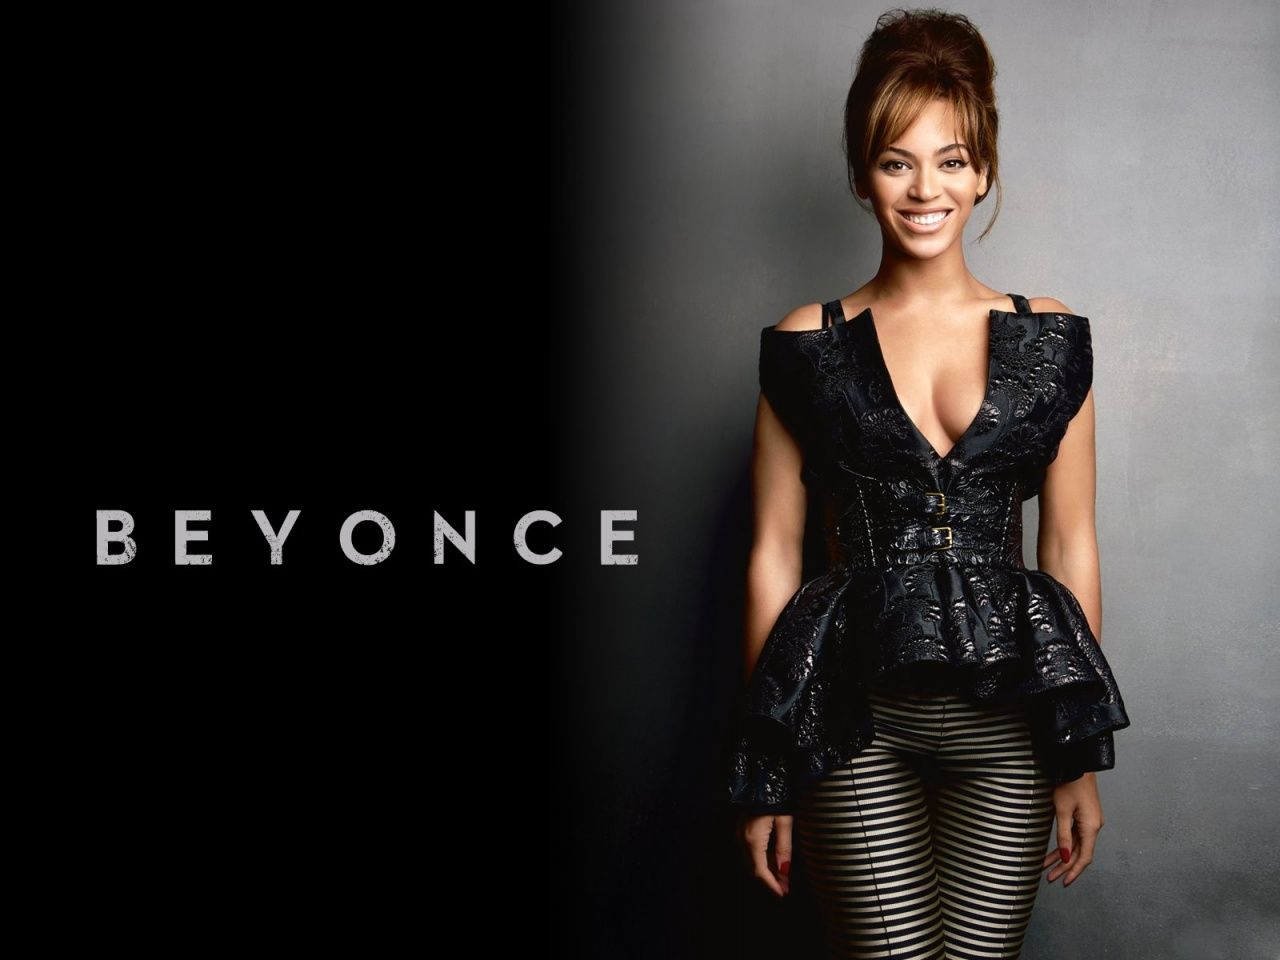 Beyonce Superpower Black and White HD desktop wallpaper 1440900